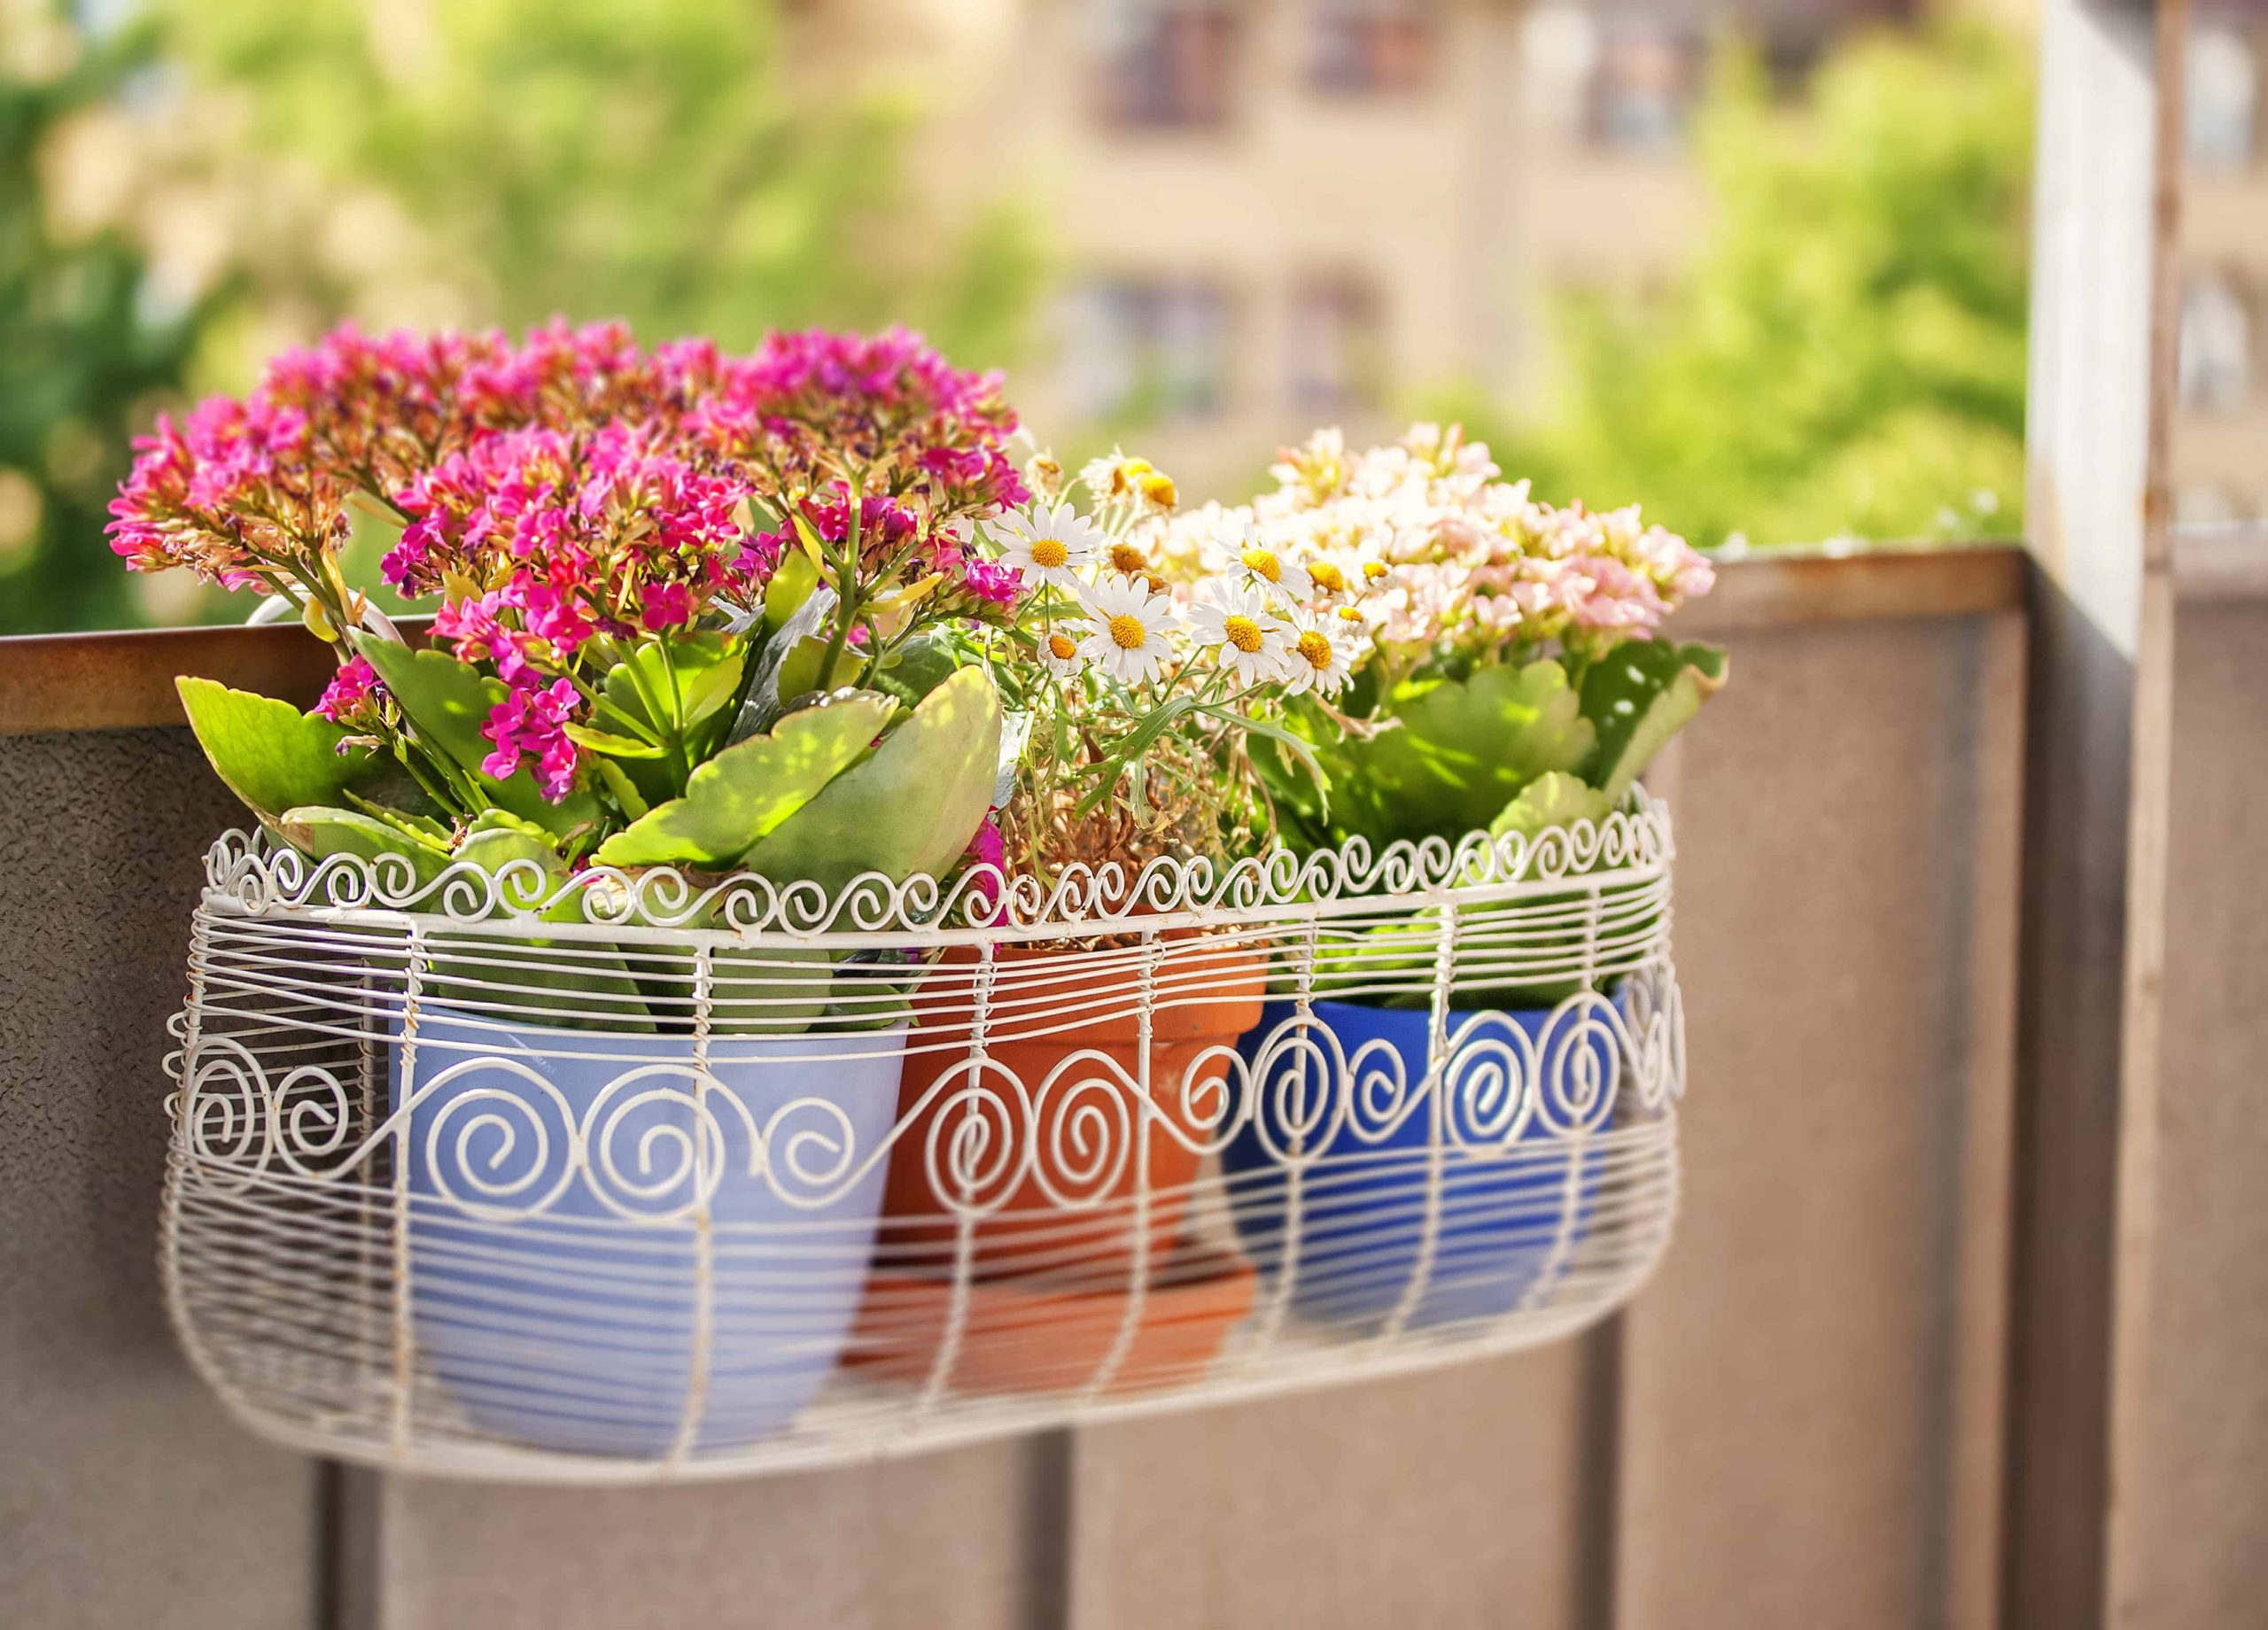 Best Planter 2020: Shopping Guide & Review